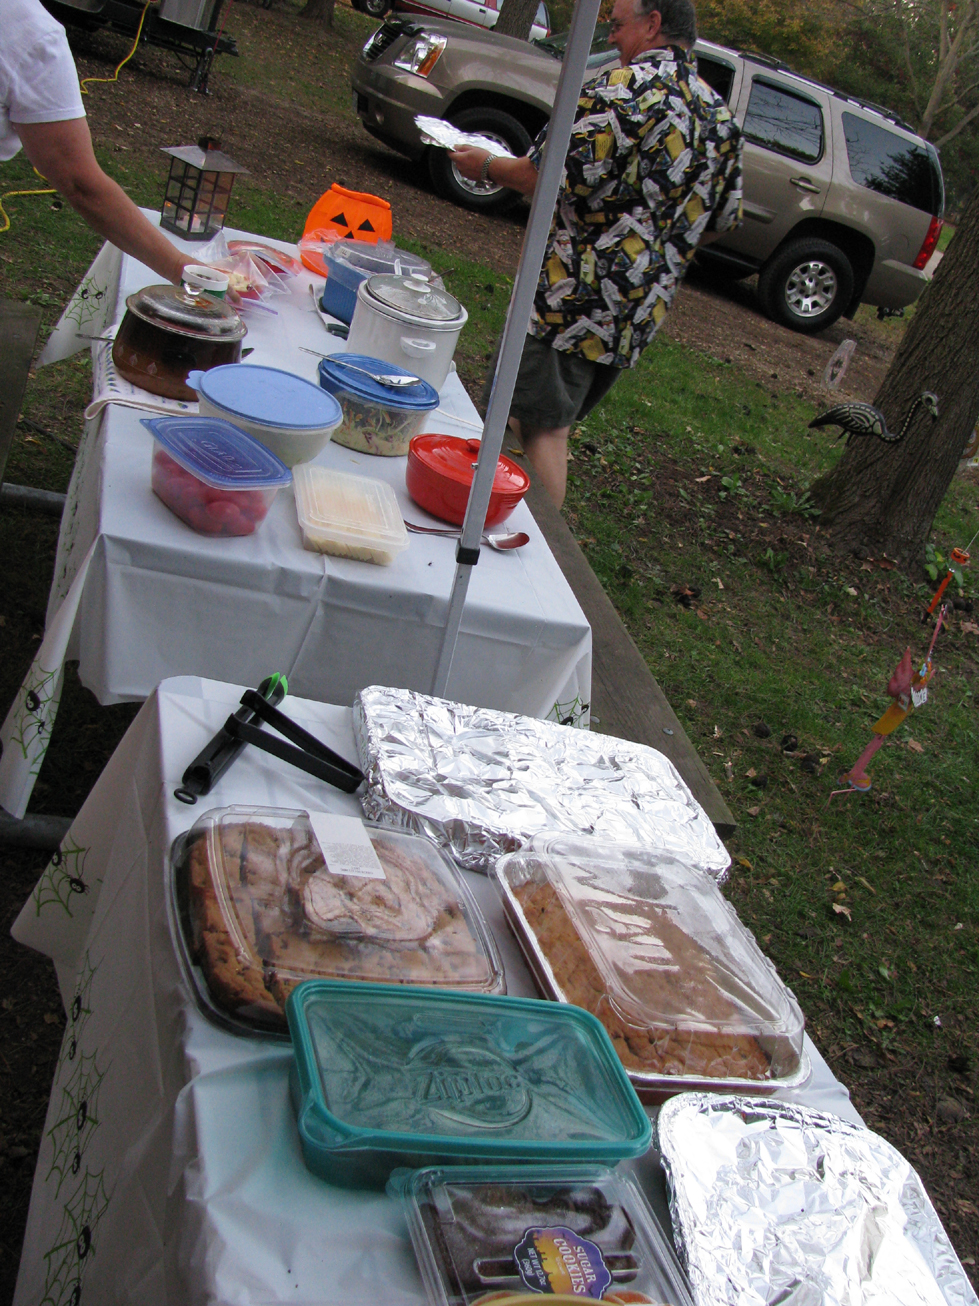 Click image for larger version  Name:2010 Fall Pec Rally  Food 2.jpg Views:79 Size:1.25 MB ID:113148